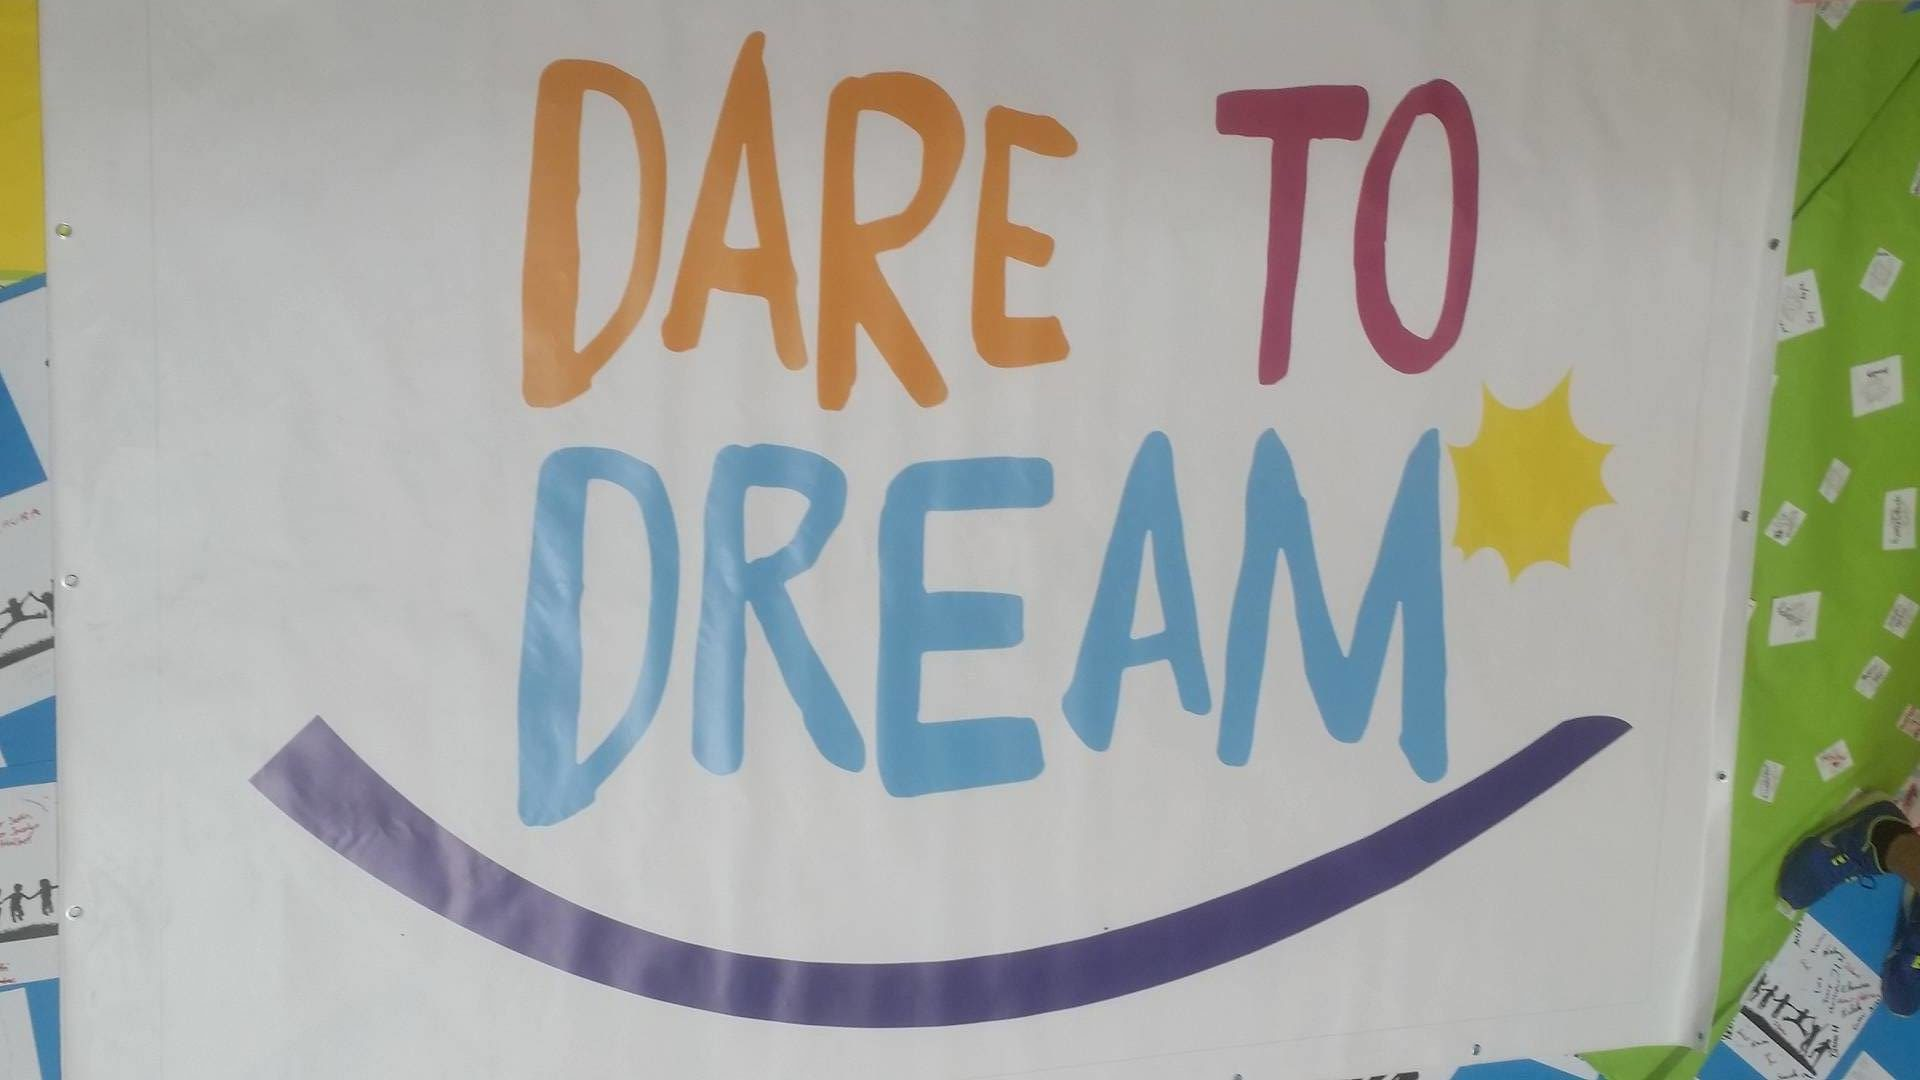 Dare to dream (7)